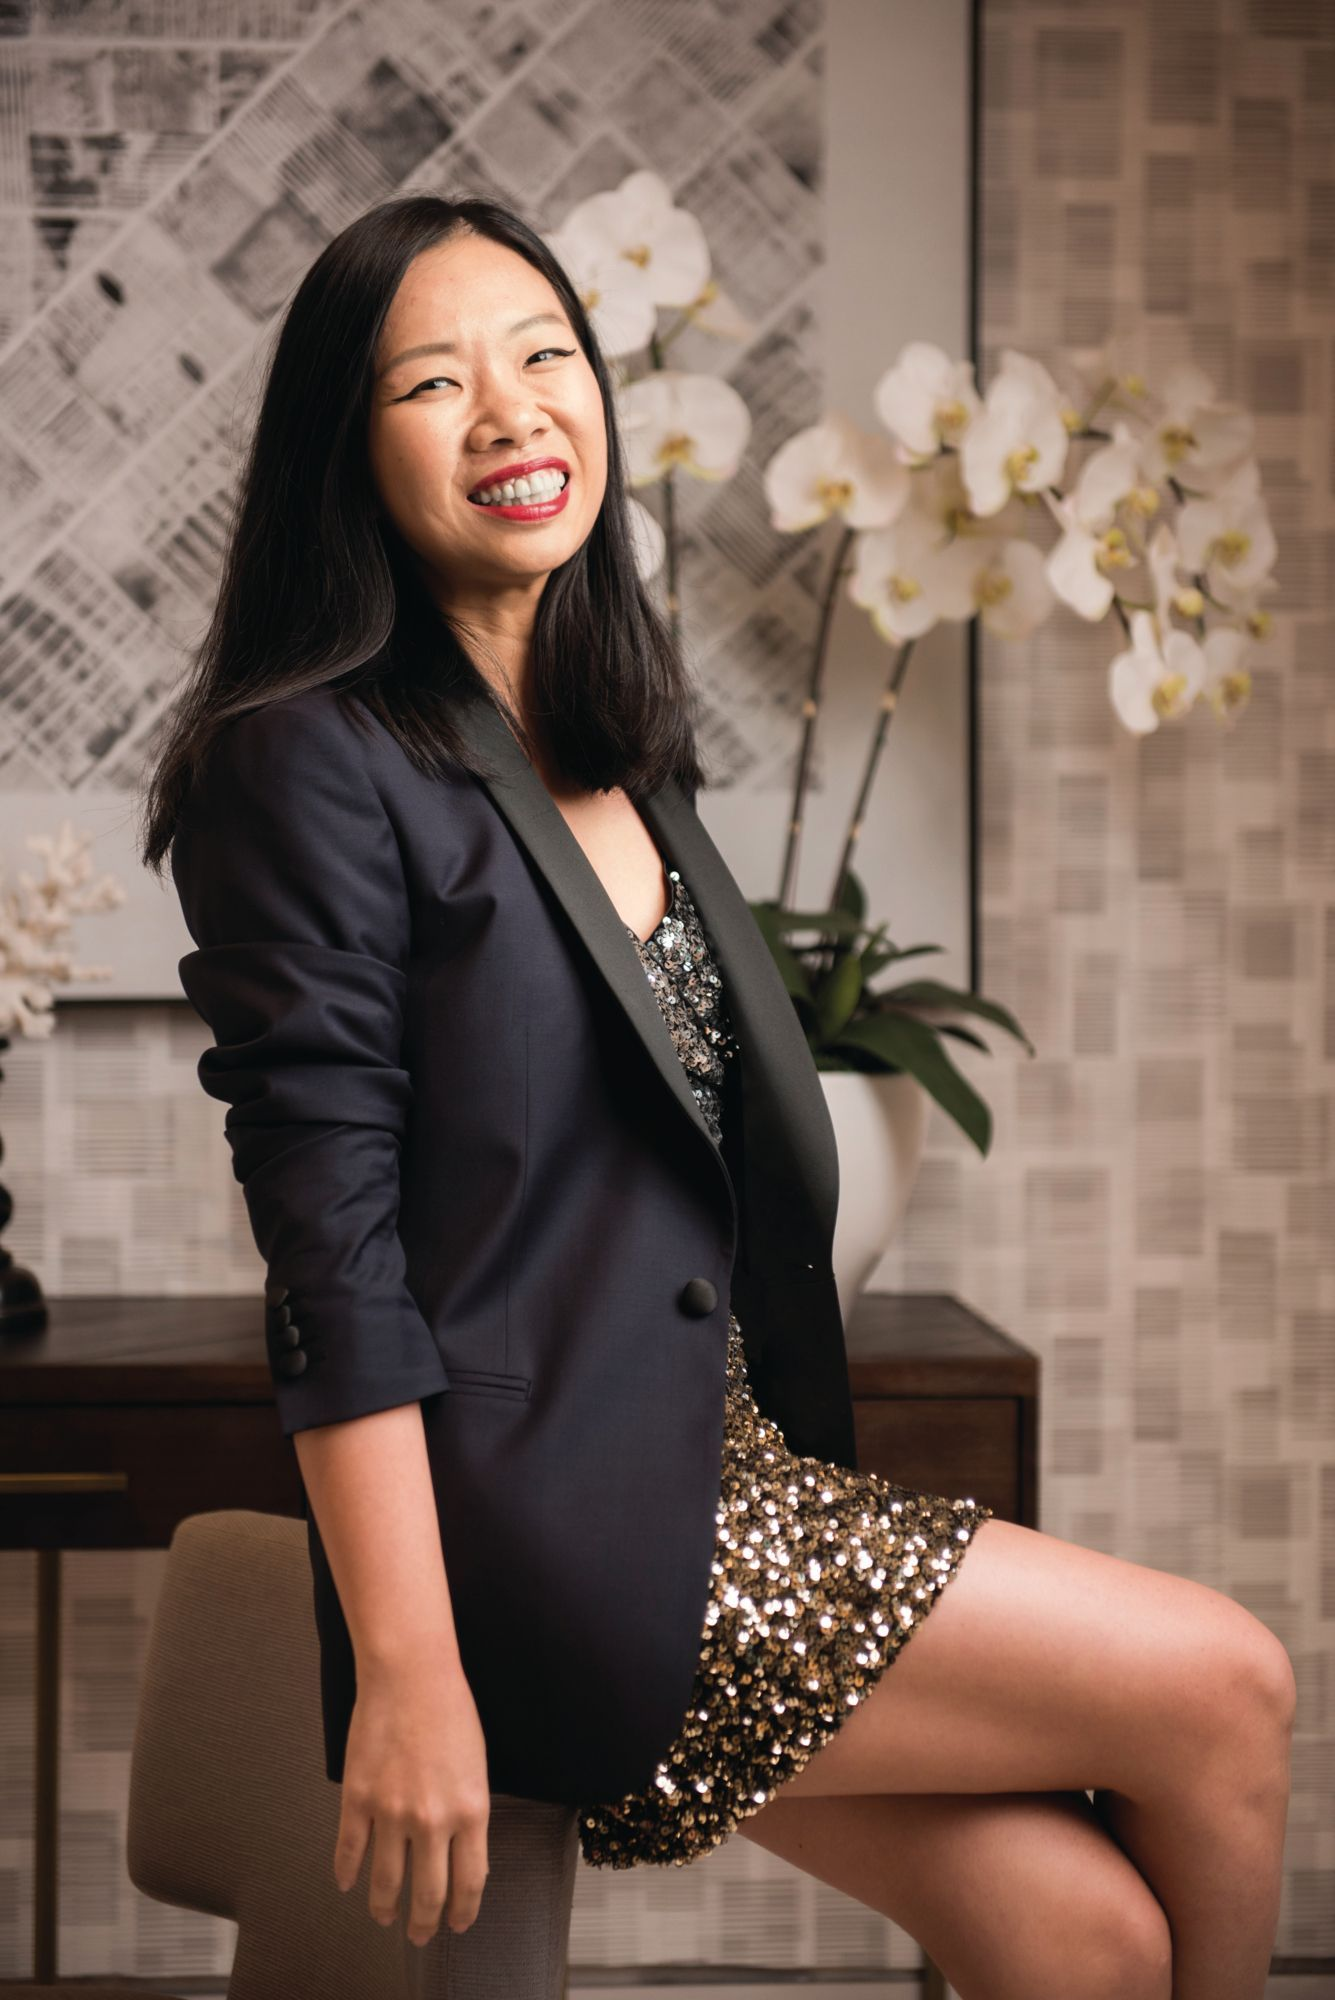 Ladies First: Crazy Rich Asians' Fashion Stylist Andrea Wong On The Importance Of Building Self-Confidence